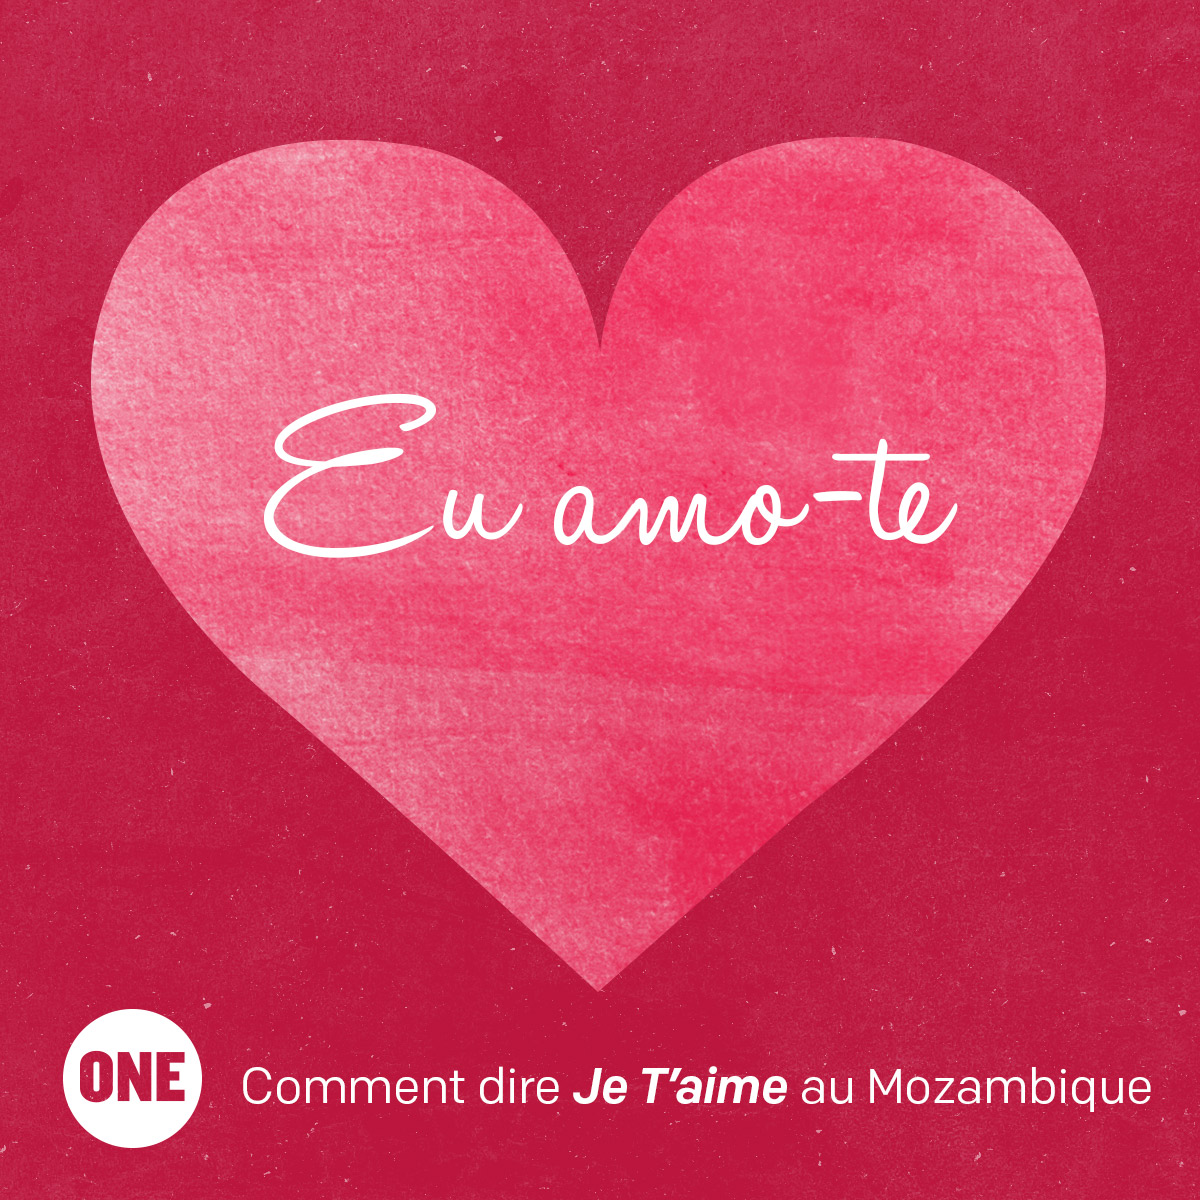 22US2014(valentine-card-share-graphic)_mozambique_FRENCH